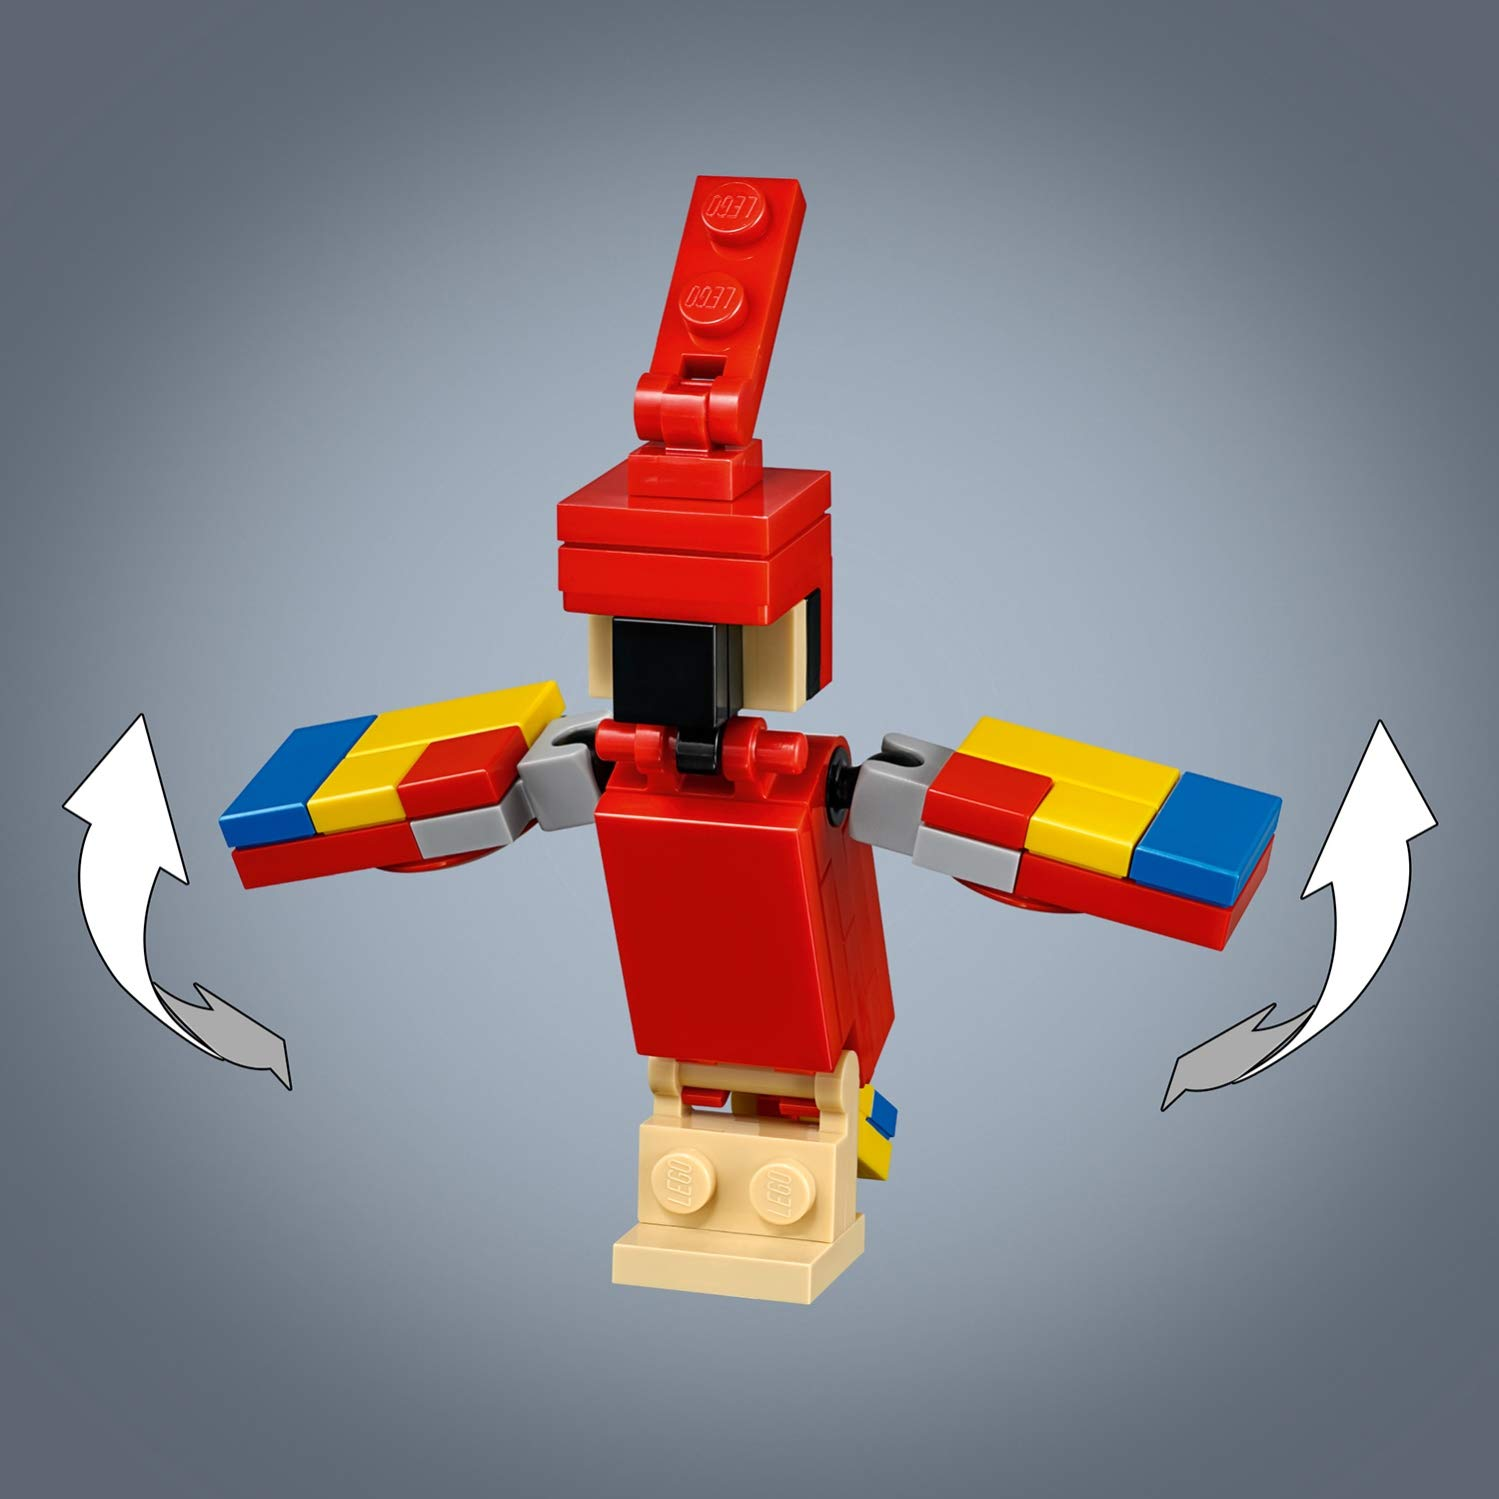 w green and yellow 1 piece Lego Parrot Figure Red